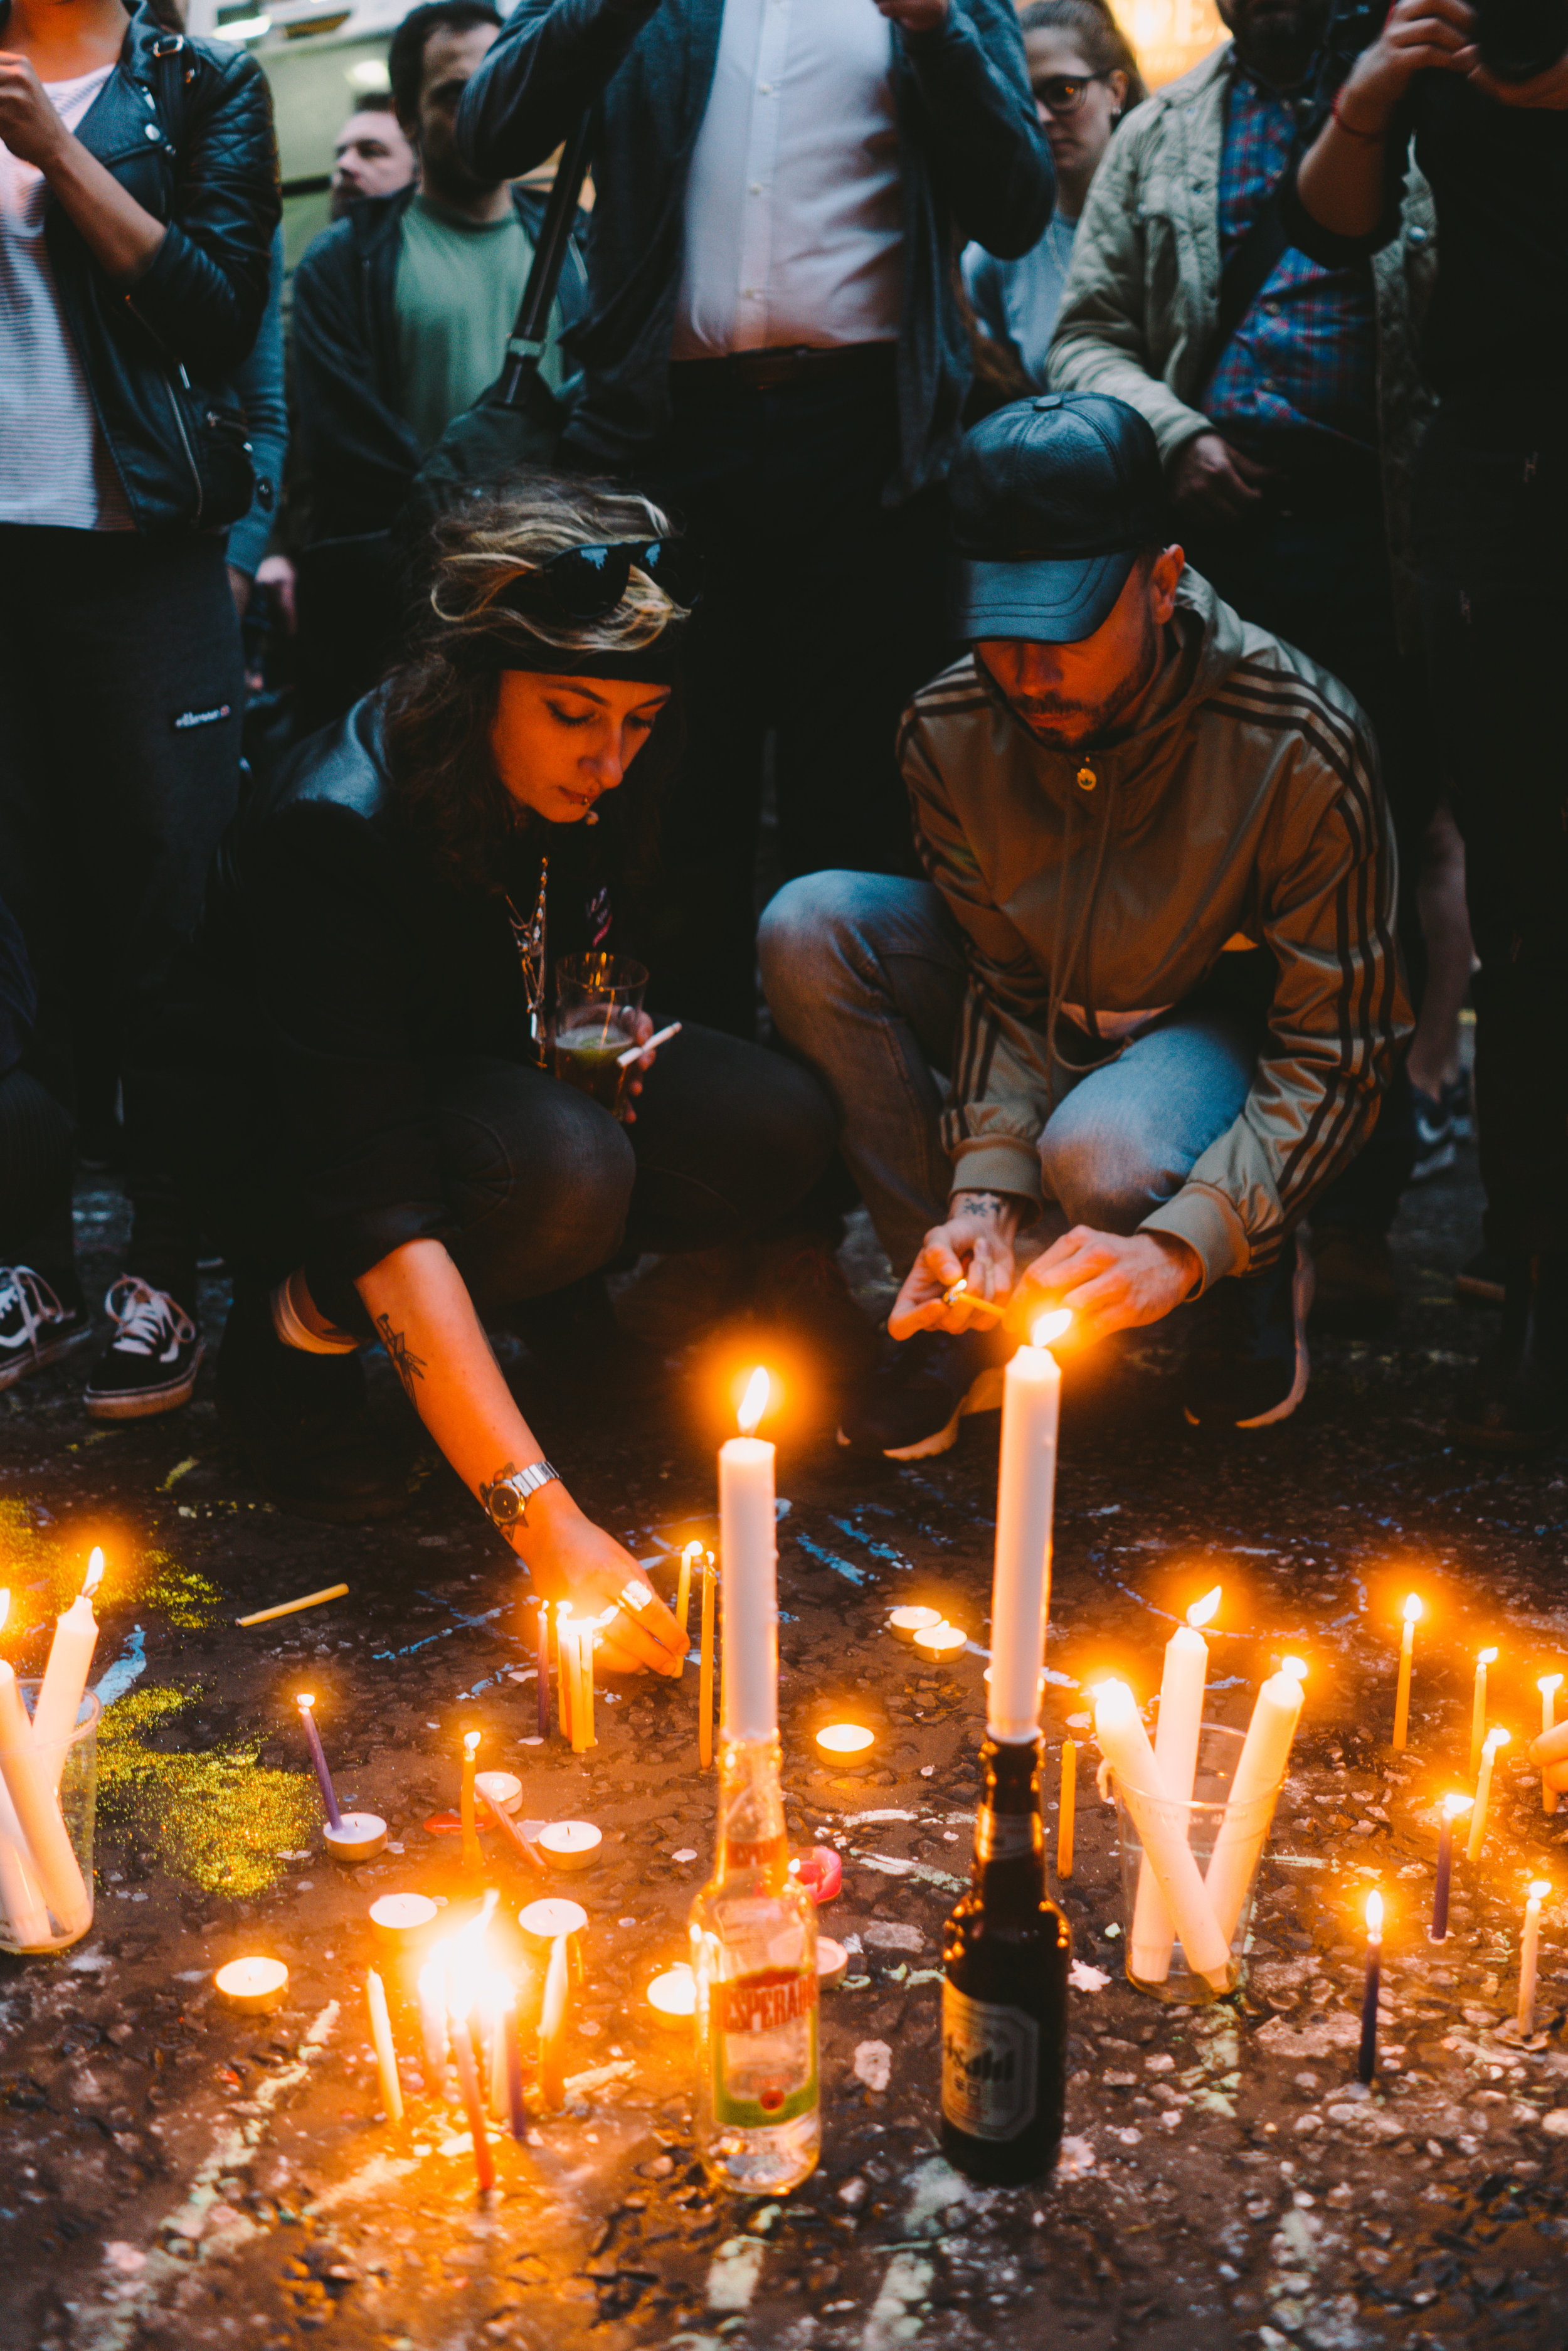 Taken at the Orlando Vigil on Old Compton Street in Soho, London on the 13 June 2016.